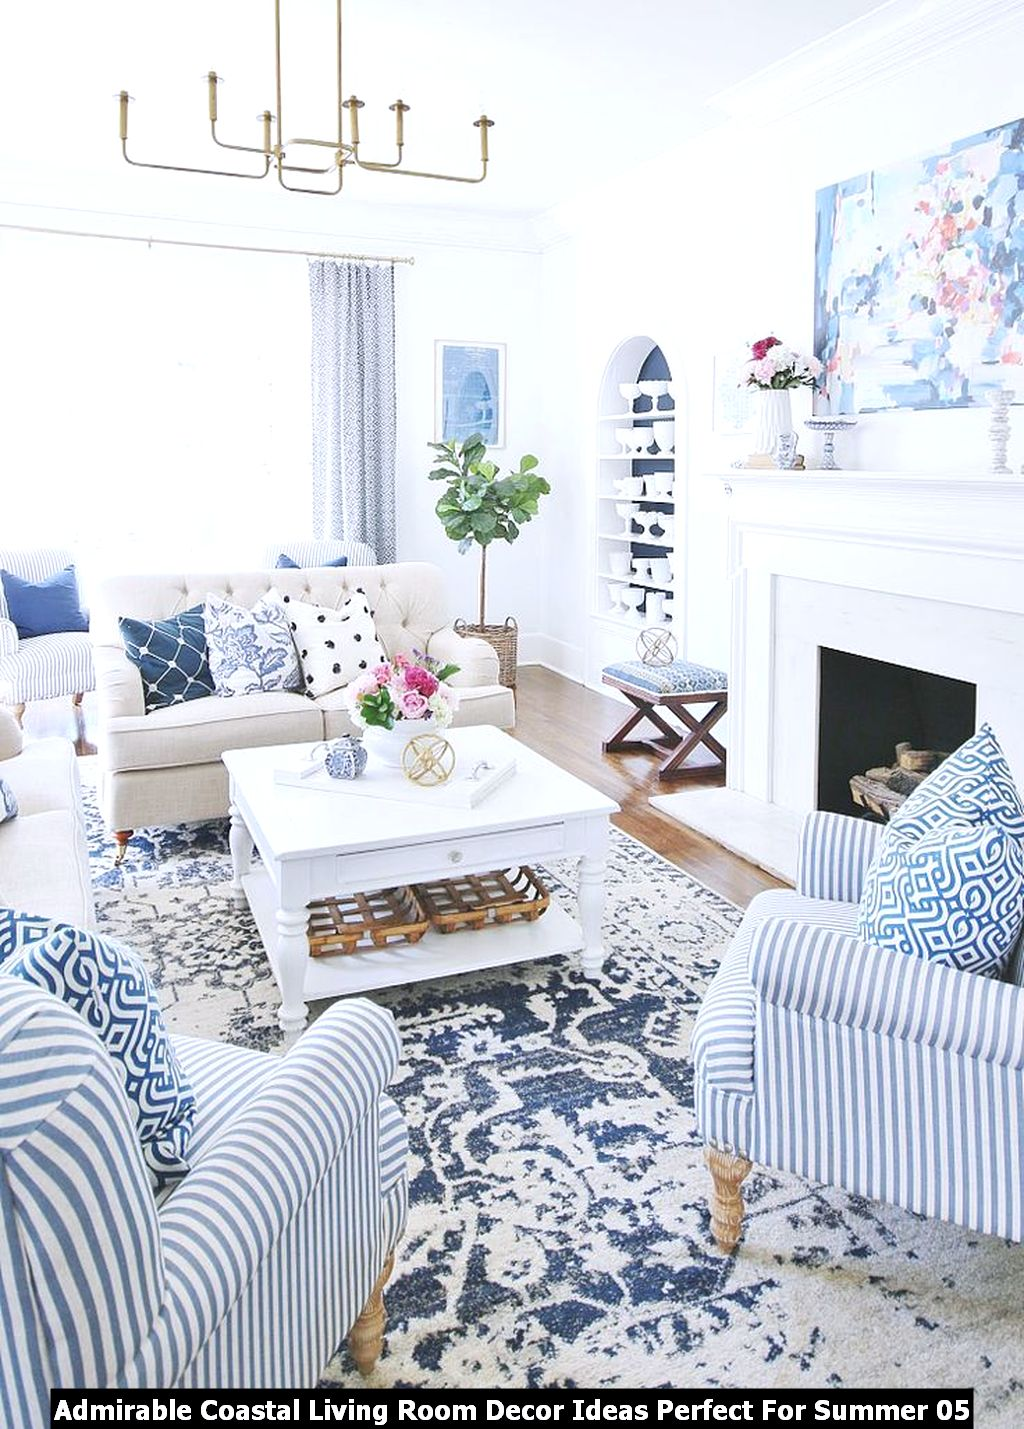 Admirable Coastal Living Room Decor Ideas Perfect For Summer 05